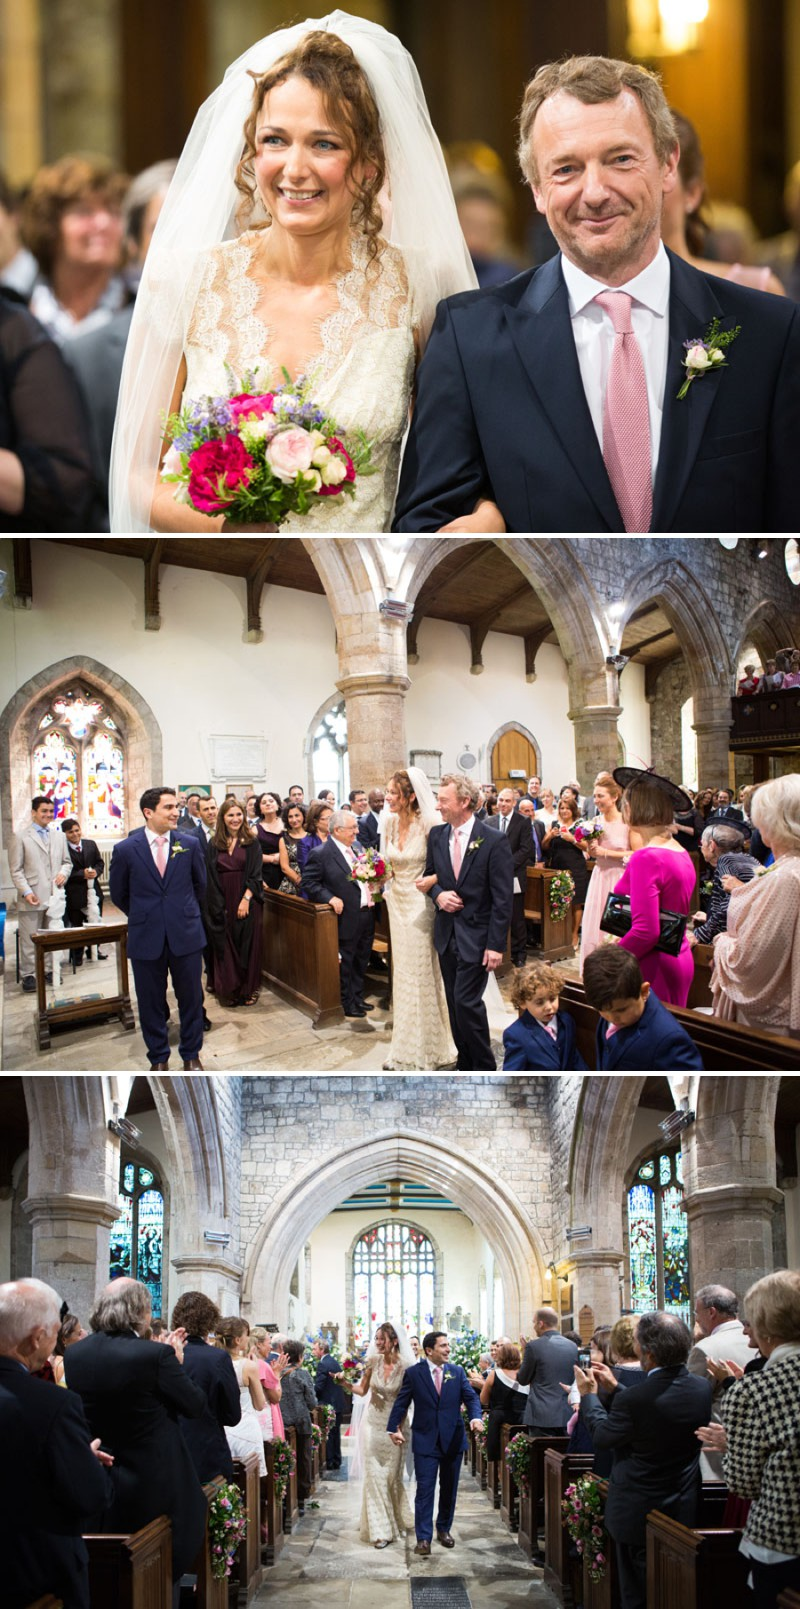 A Fusion Welsh Greek Cypriot Wedding With A Claire Pettibone Dress And A Colour Pop Bouquet By Lily & Frank Photography._0004